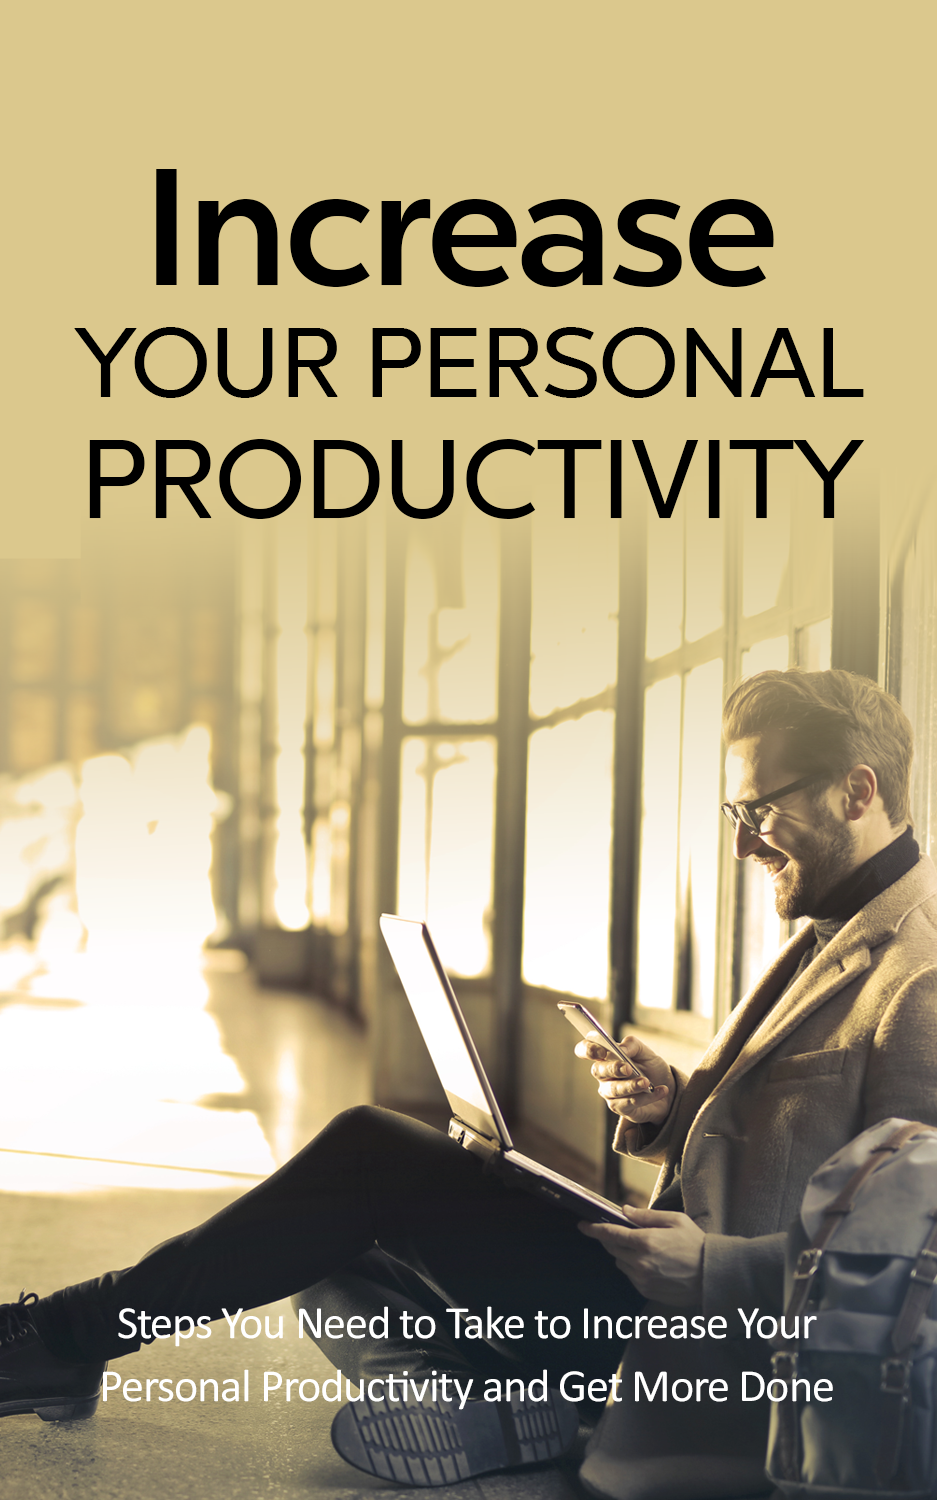 Increase Your Personal Productivity (Steps You Need To Take To Increase Your Personal Productivity And Get More Done) Ebook's Book Image